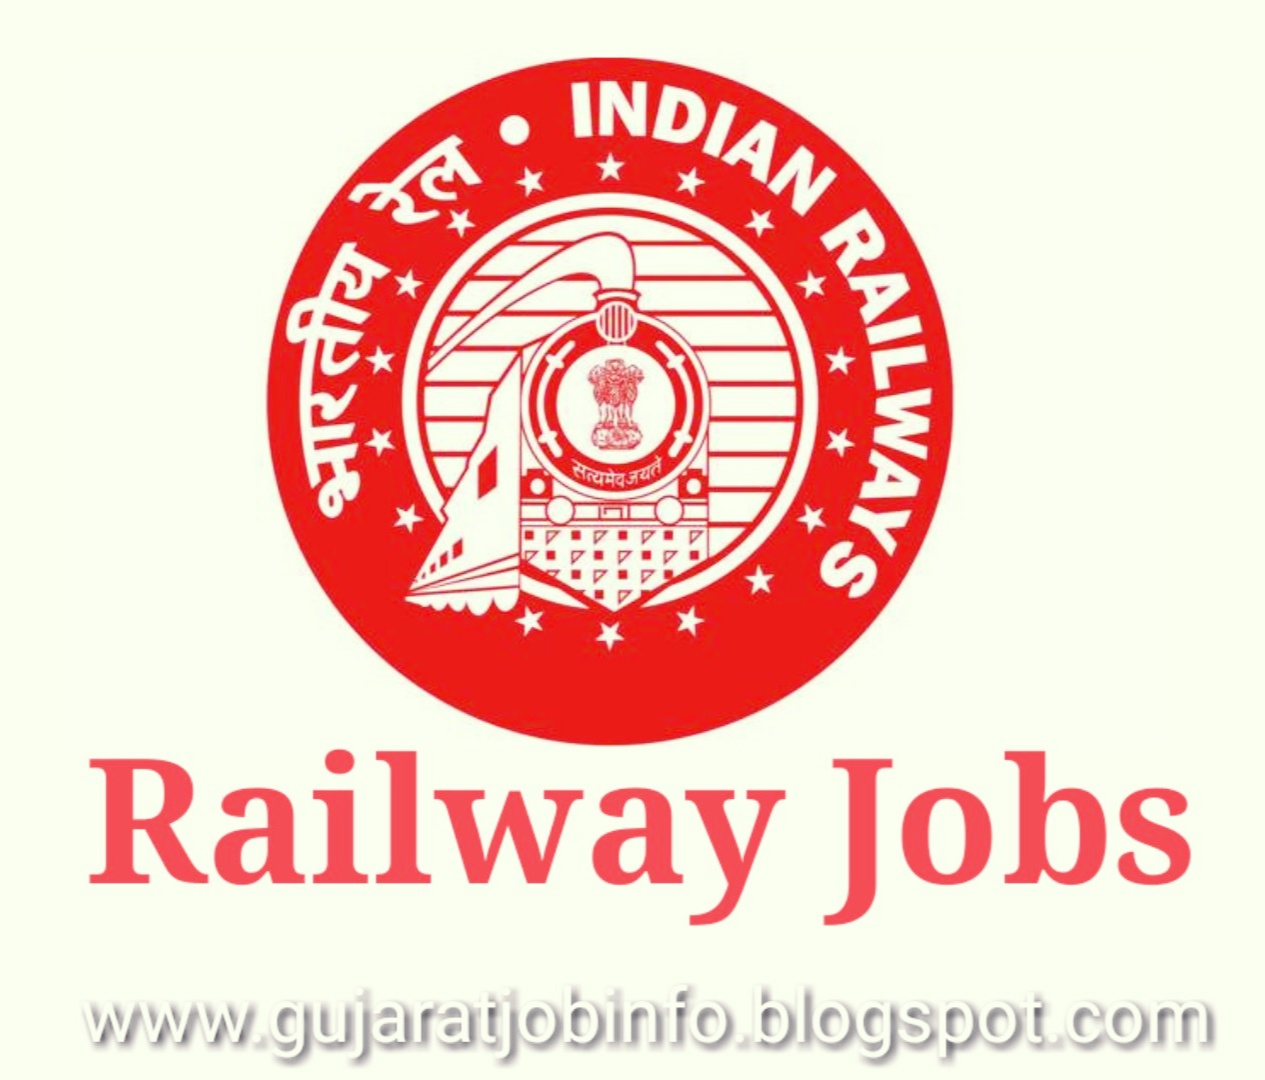 Railway Recruitment Boards has published pera-Medical Recruitment Total post of 1937